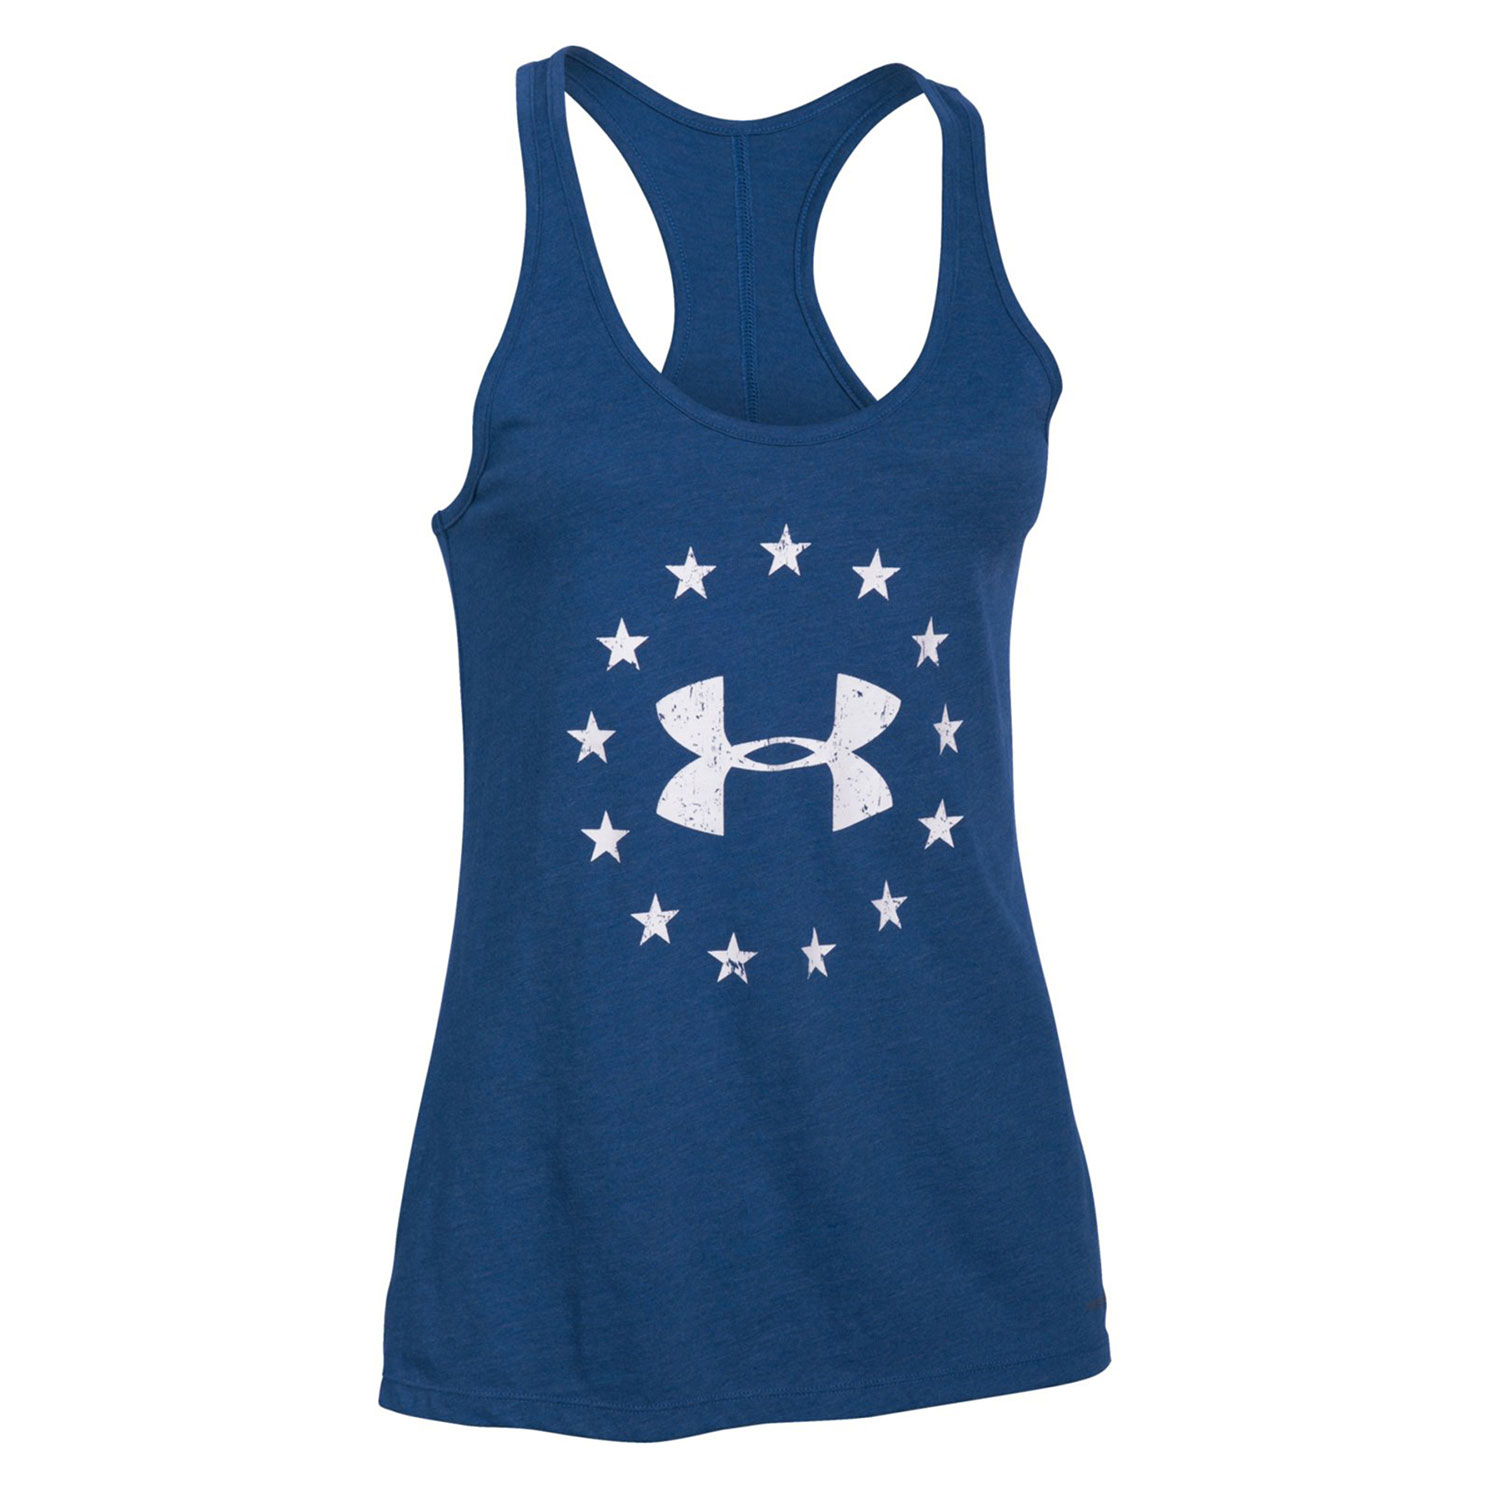 Under Armour Women's Freedom Tri-Blend Tank